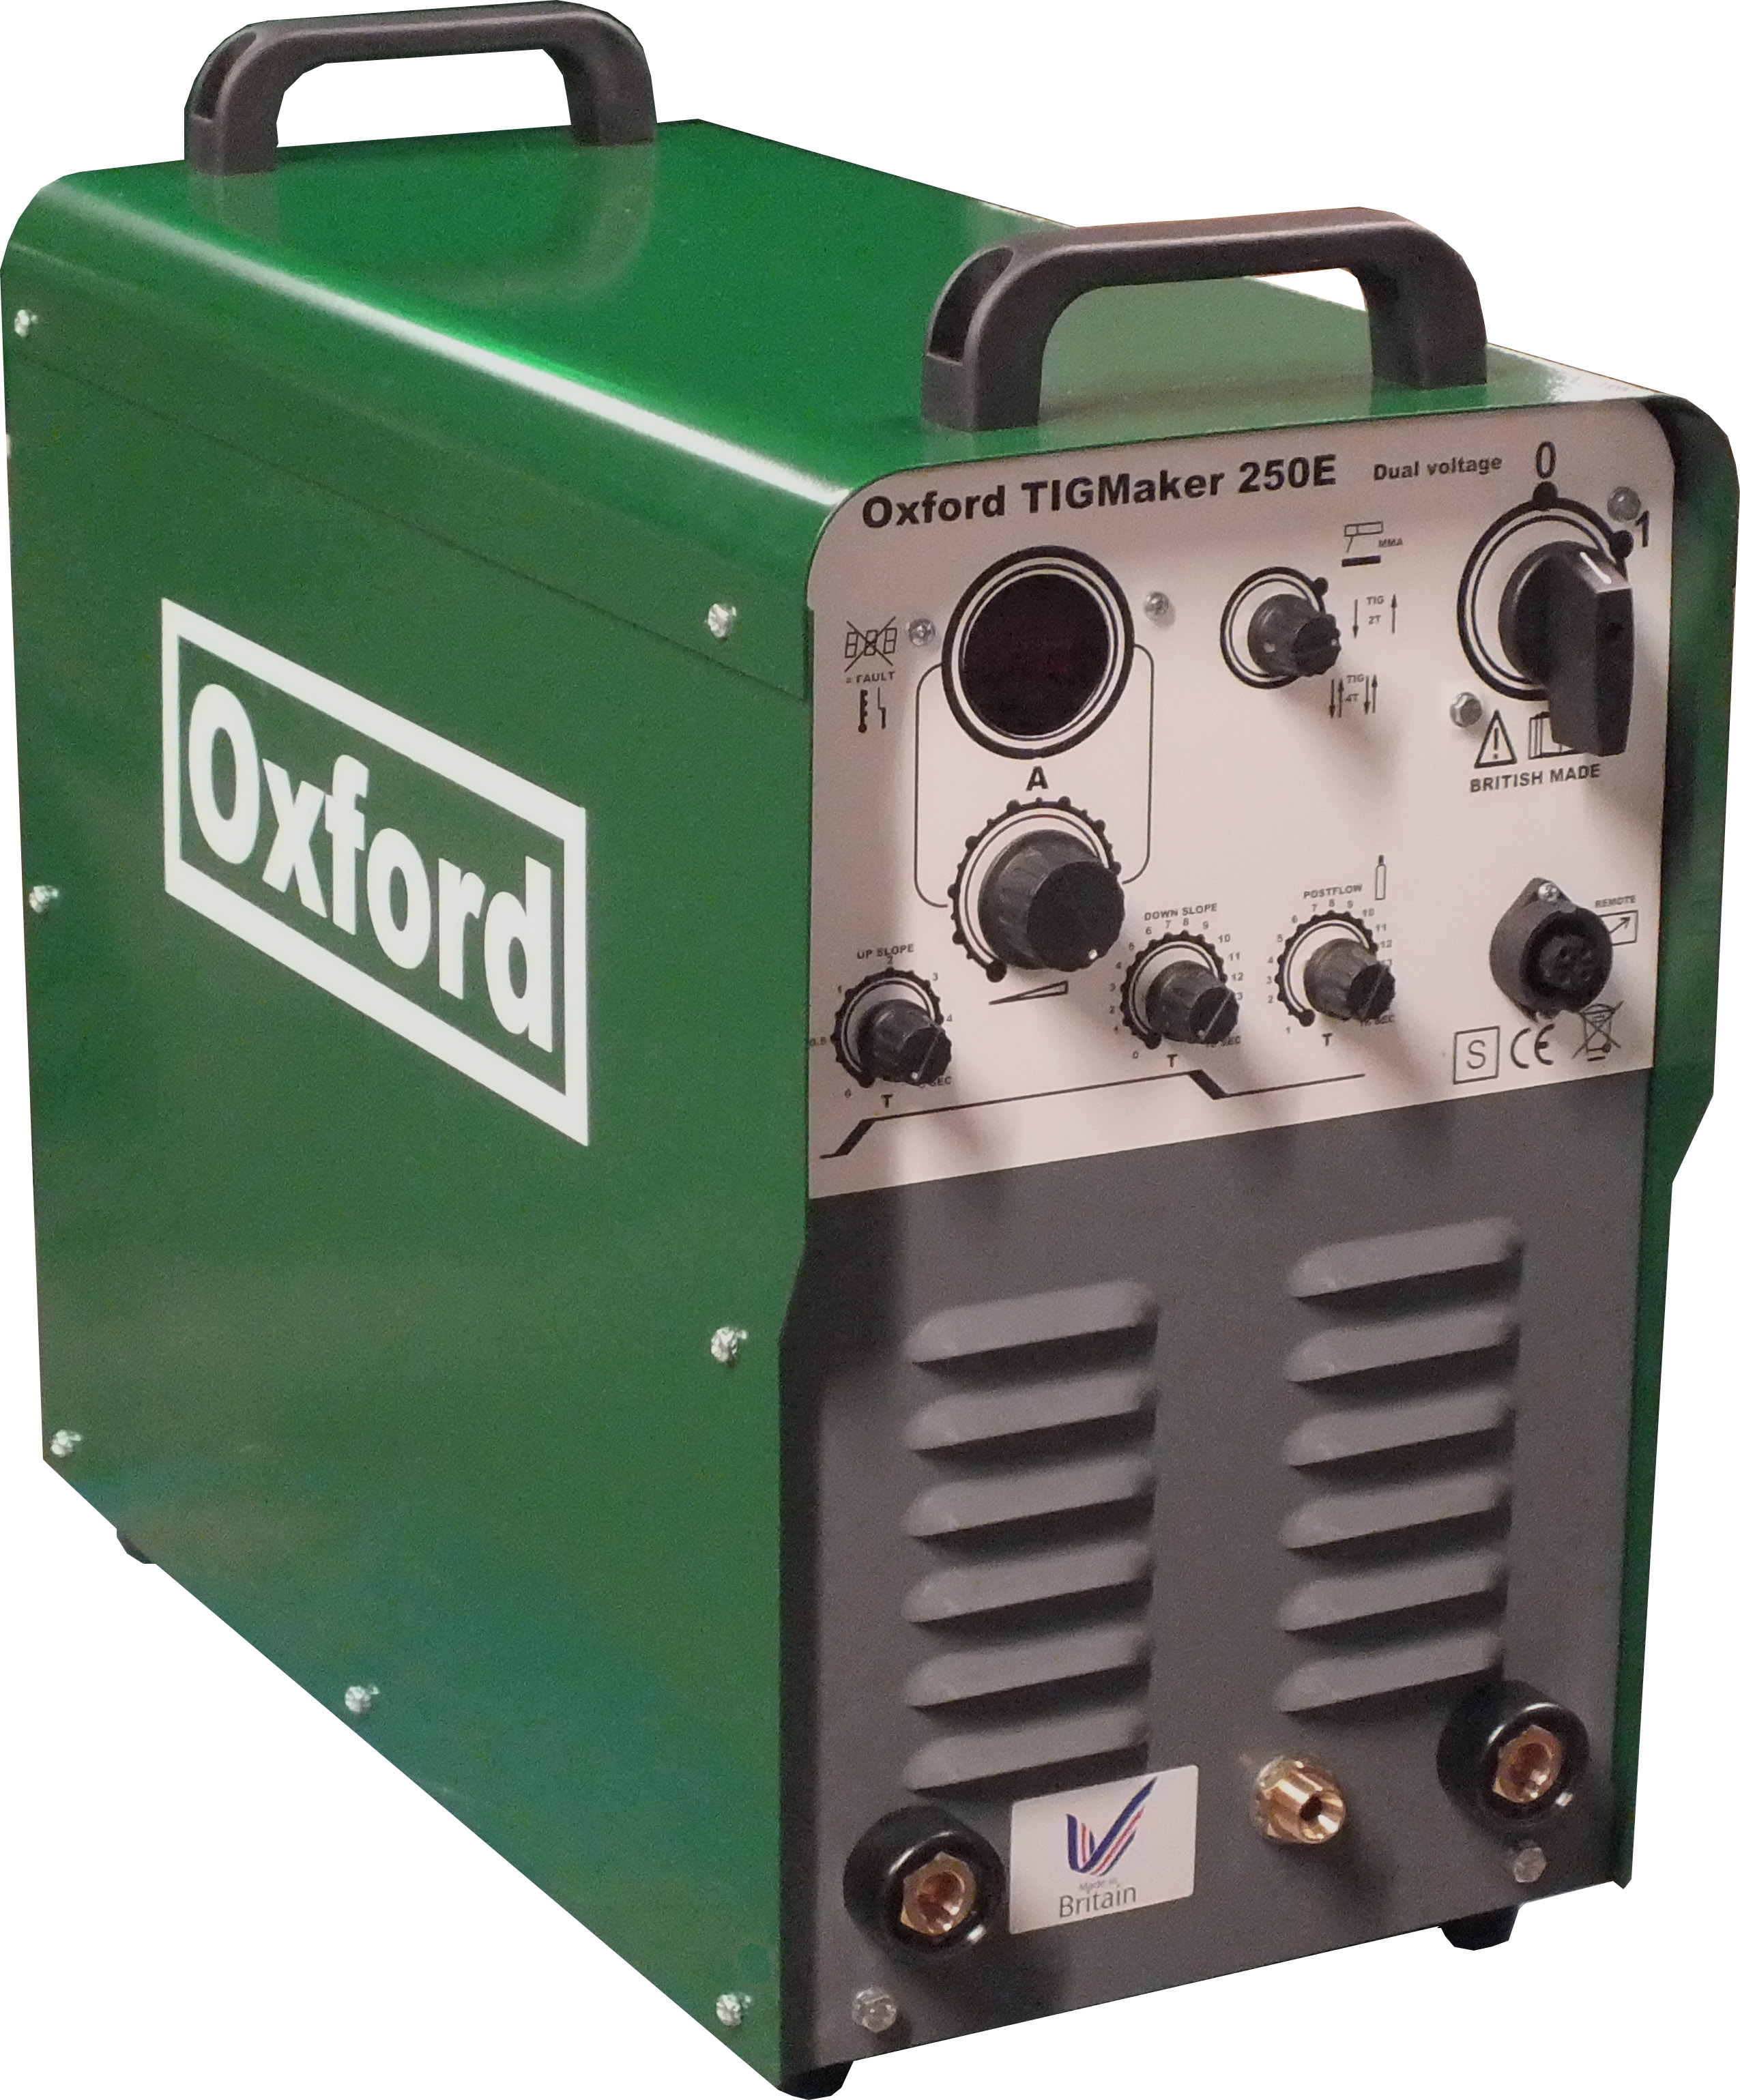 Oxford  TIGMaker 200E dual voltage 110/230V Image